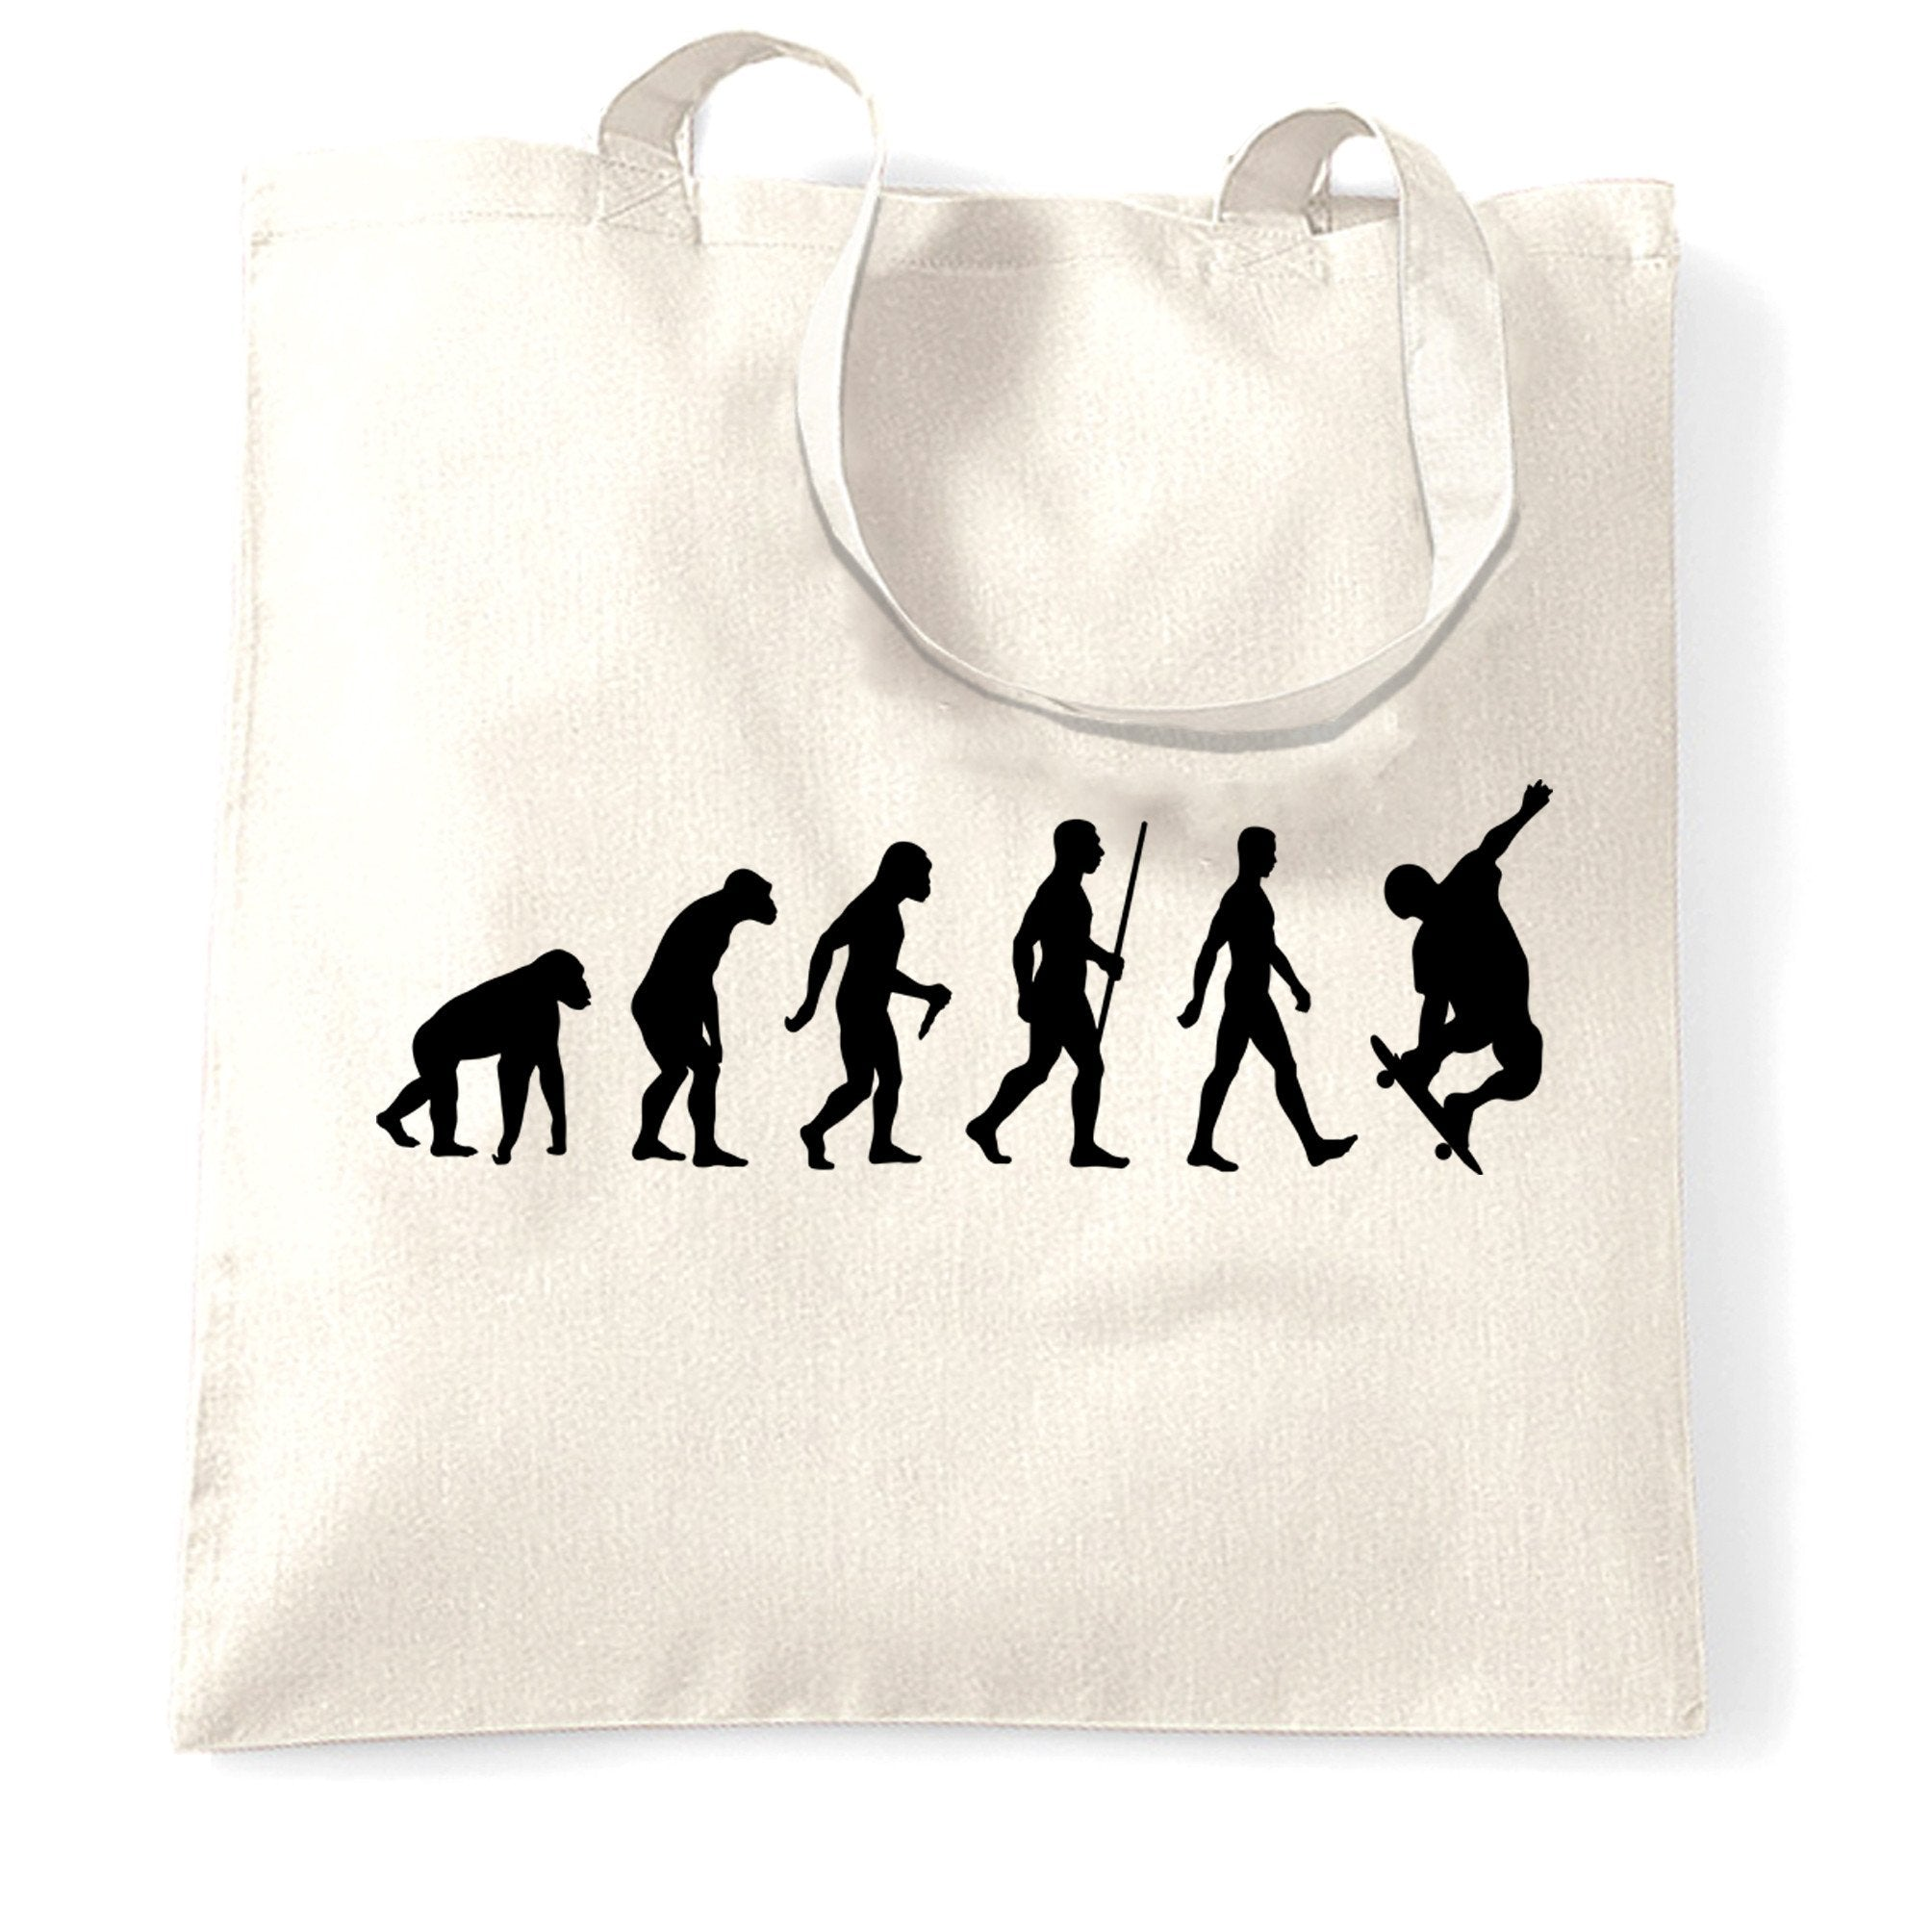 Sports Tote Bag The Evolution Of A Skateboarder